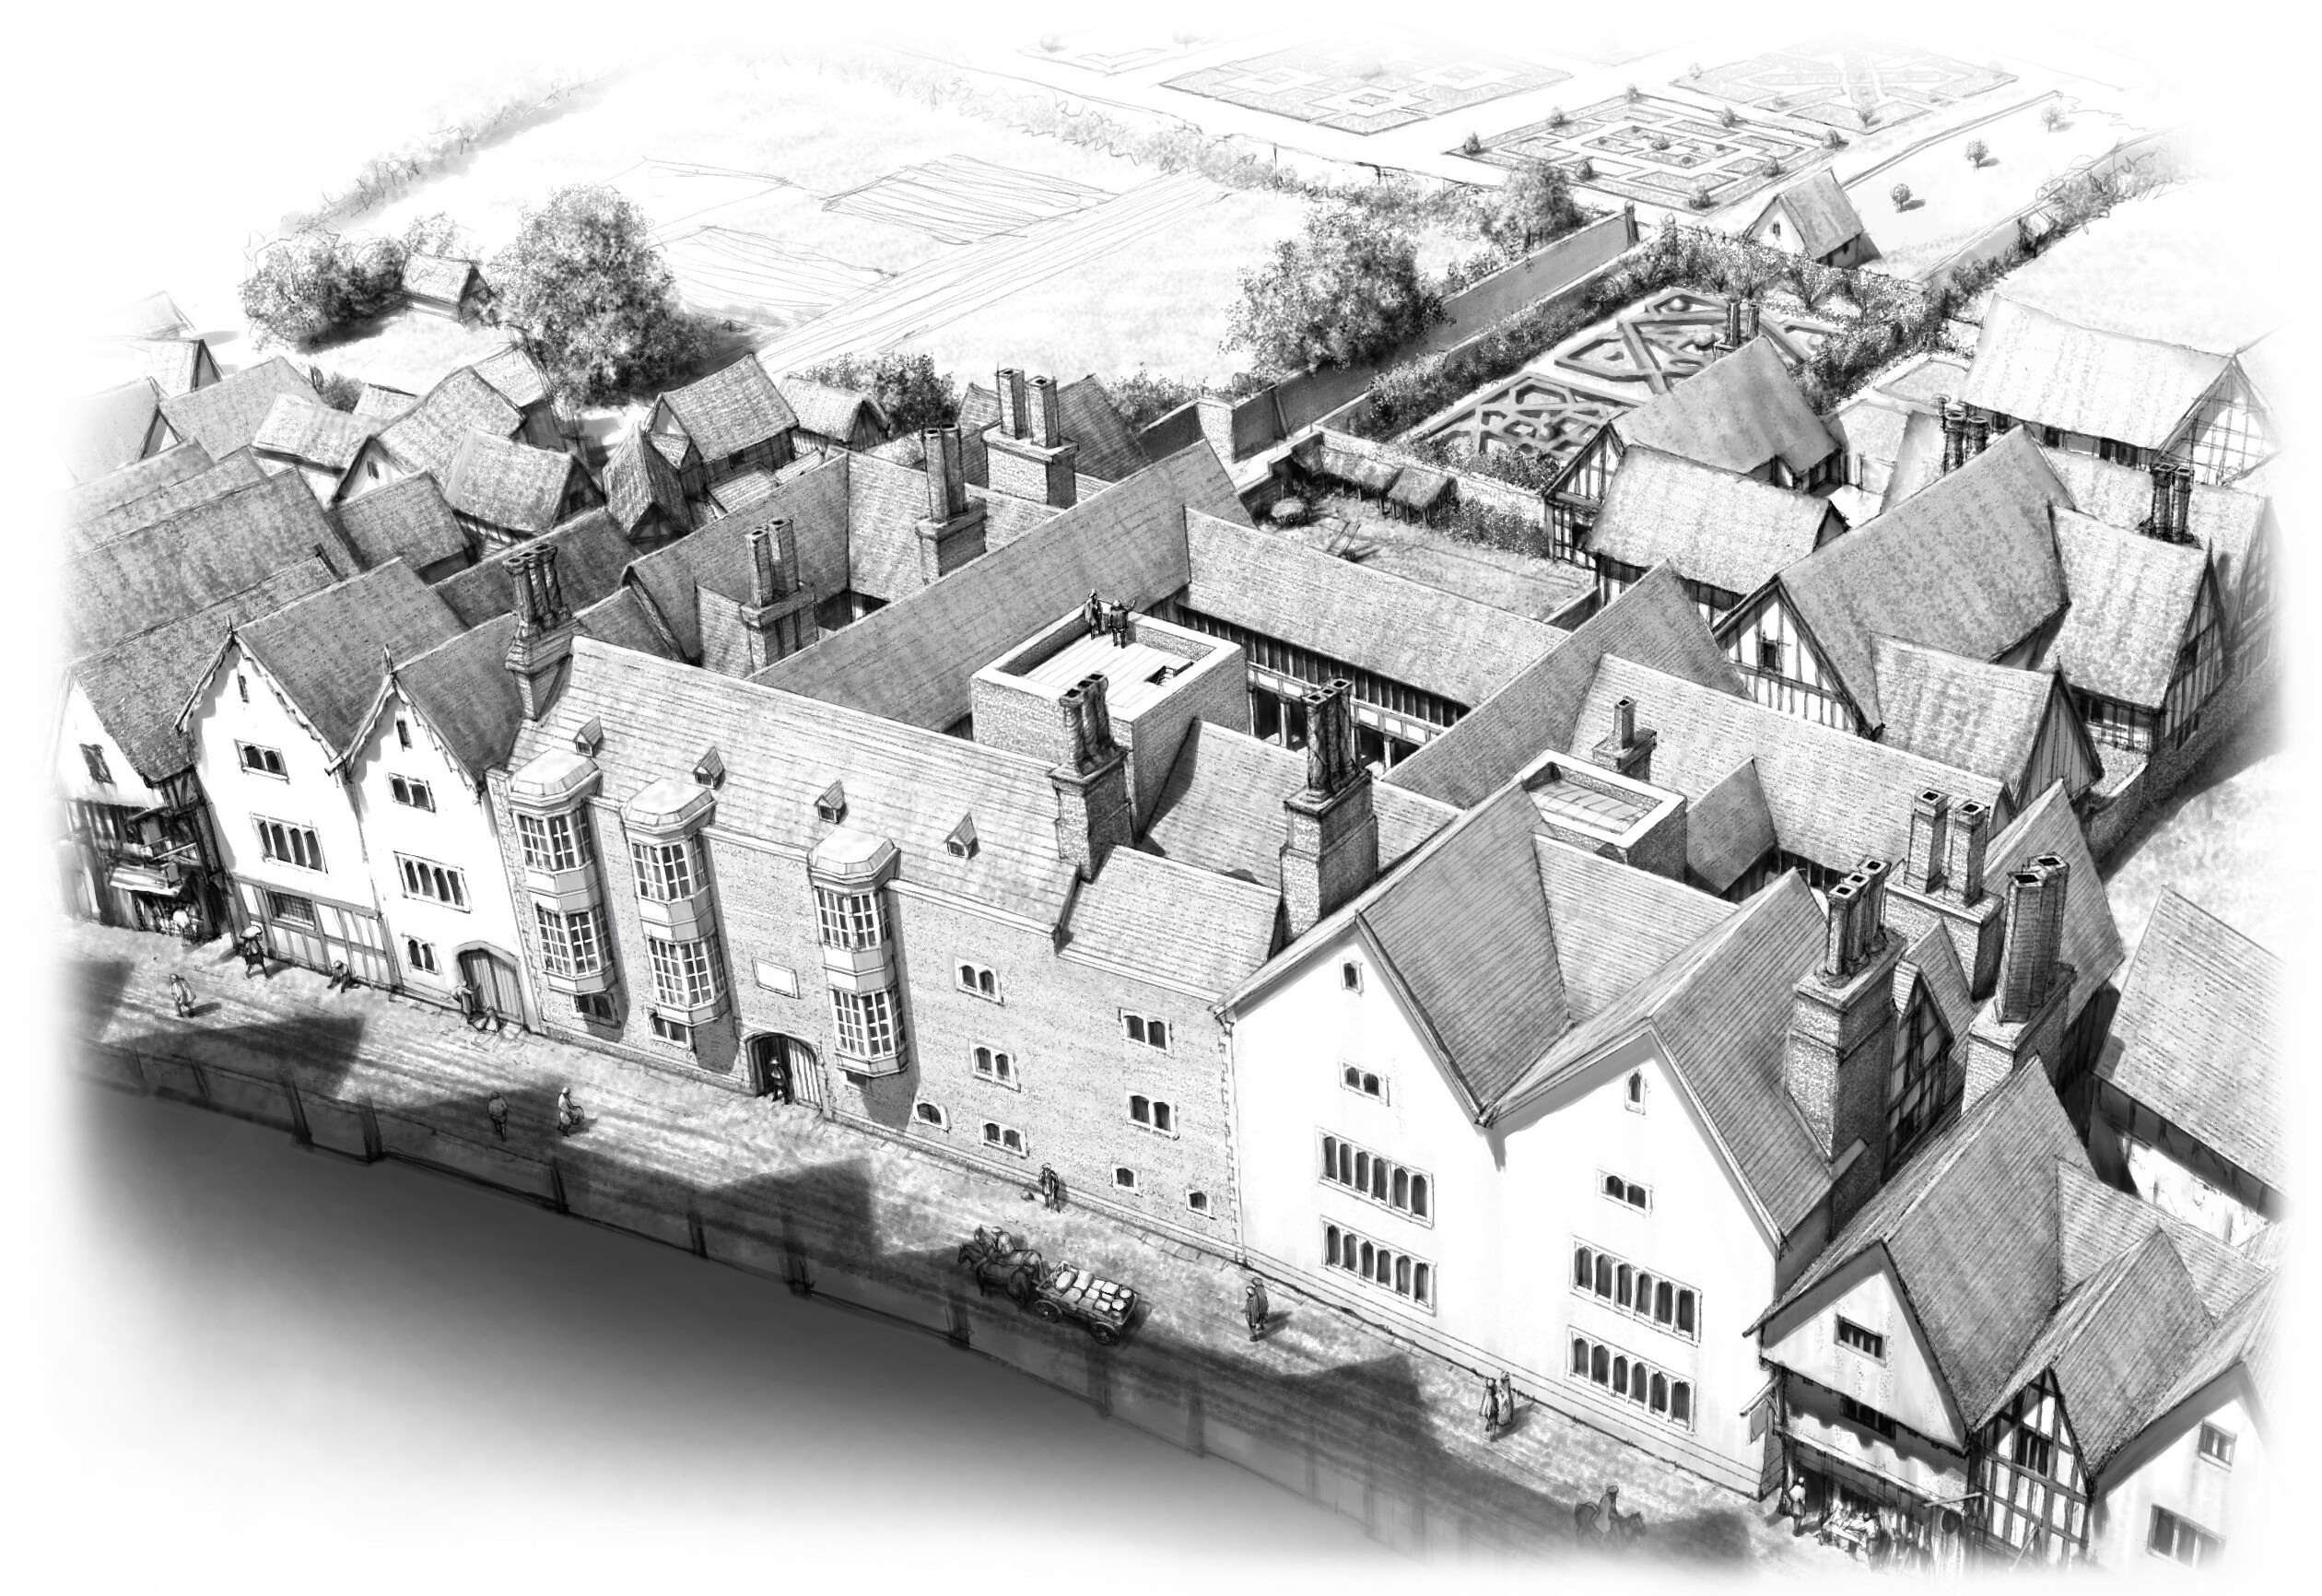 <i>Courtesy Peter Urmston/Nick Holder</i><br/>An artist's impression of the 16th-century London mansion where King Henry VIII's chief minister Thomas Cromwell lived.